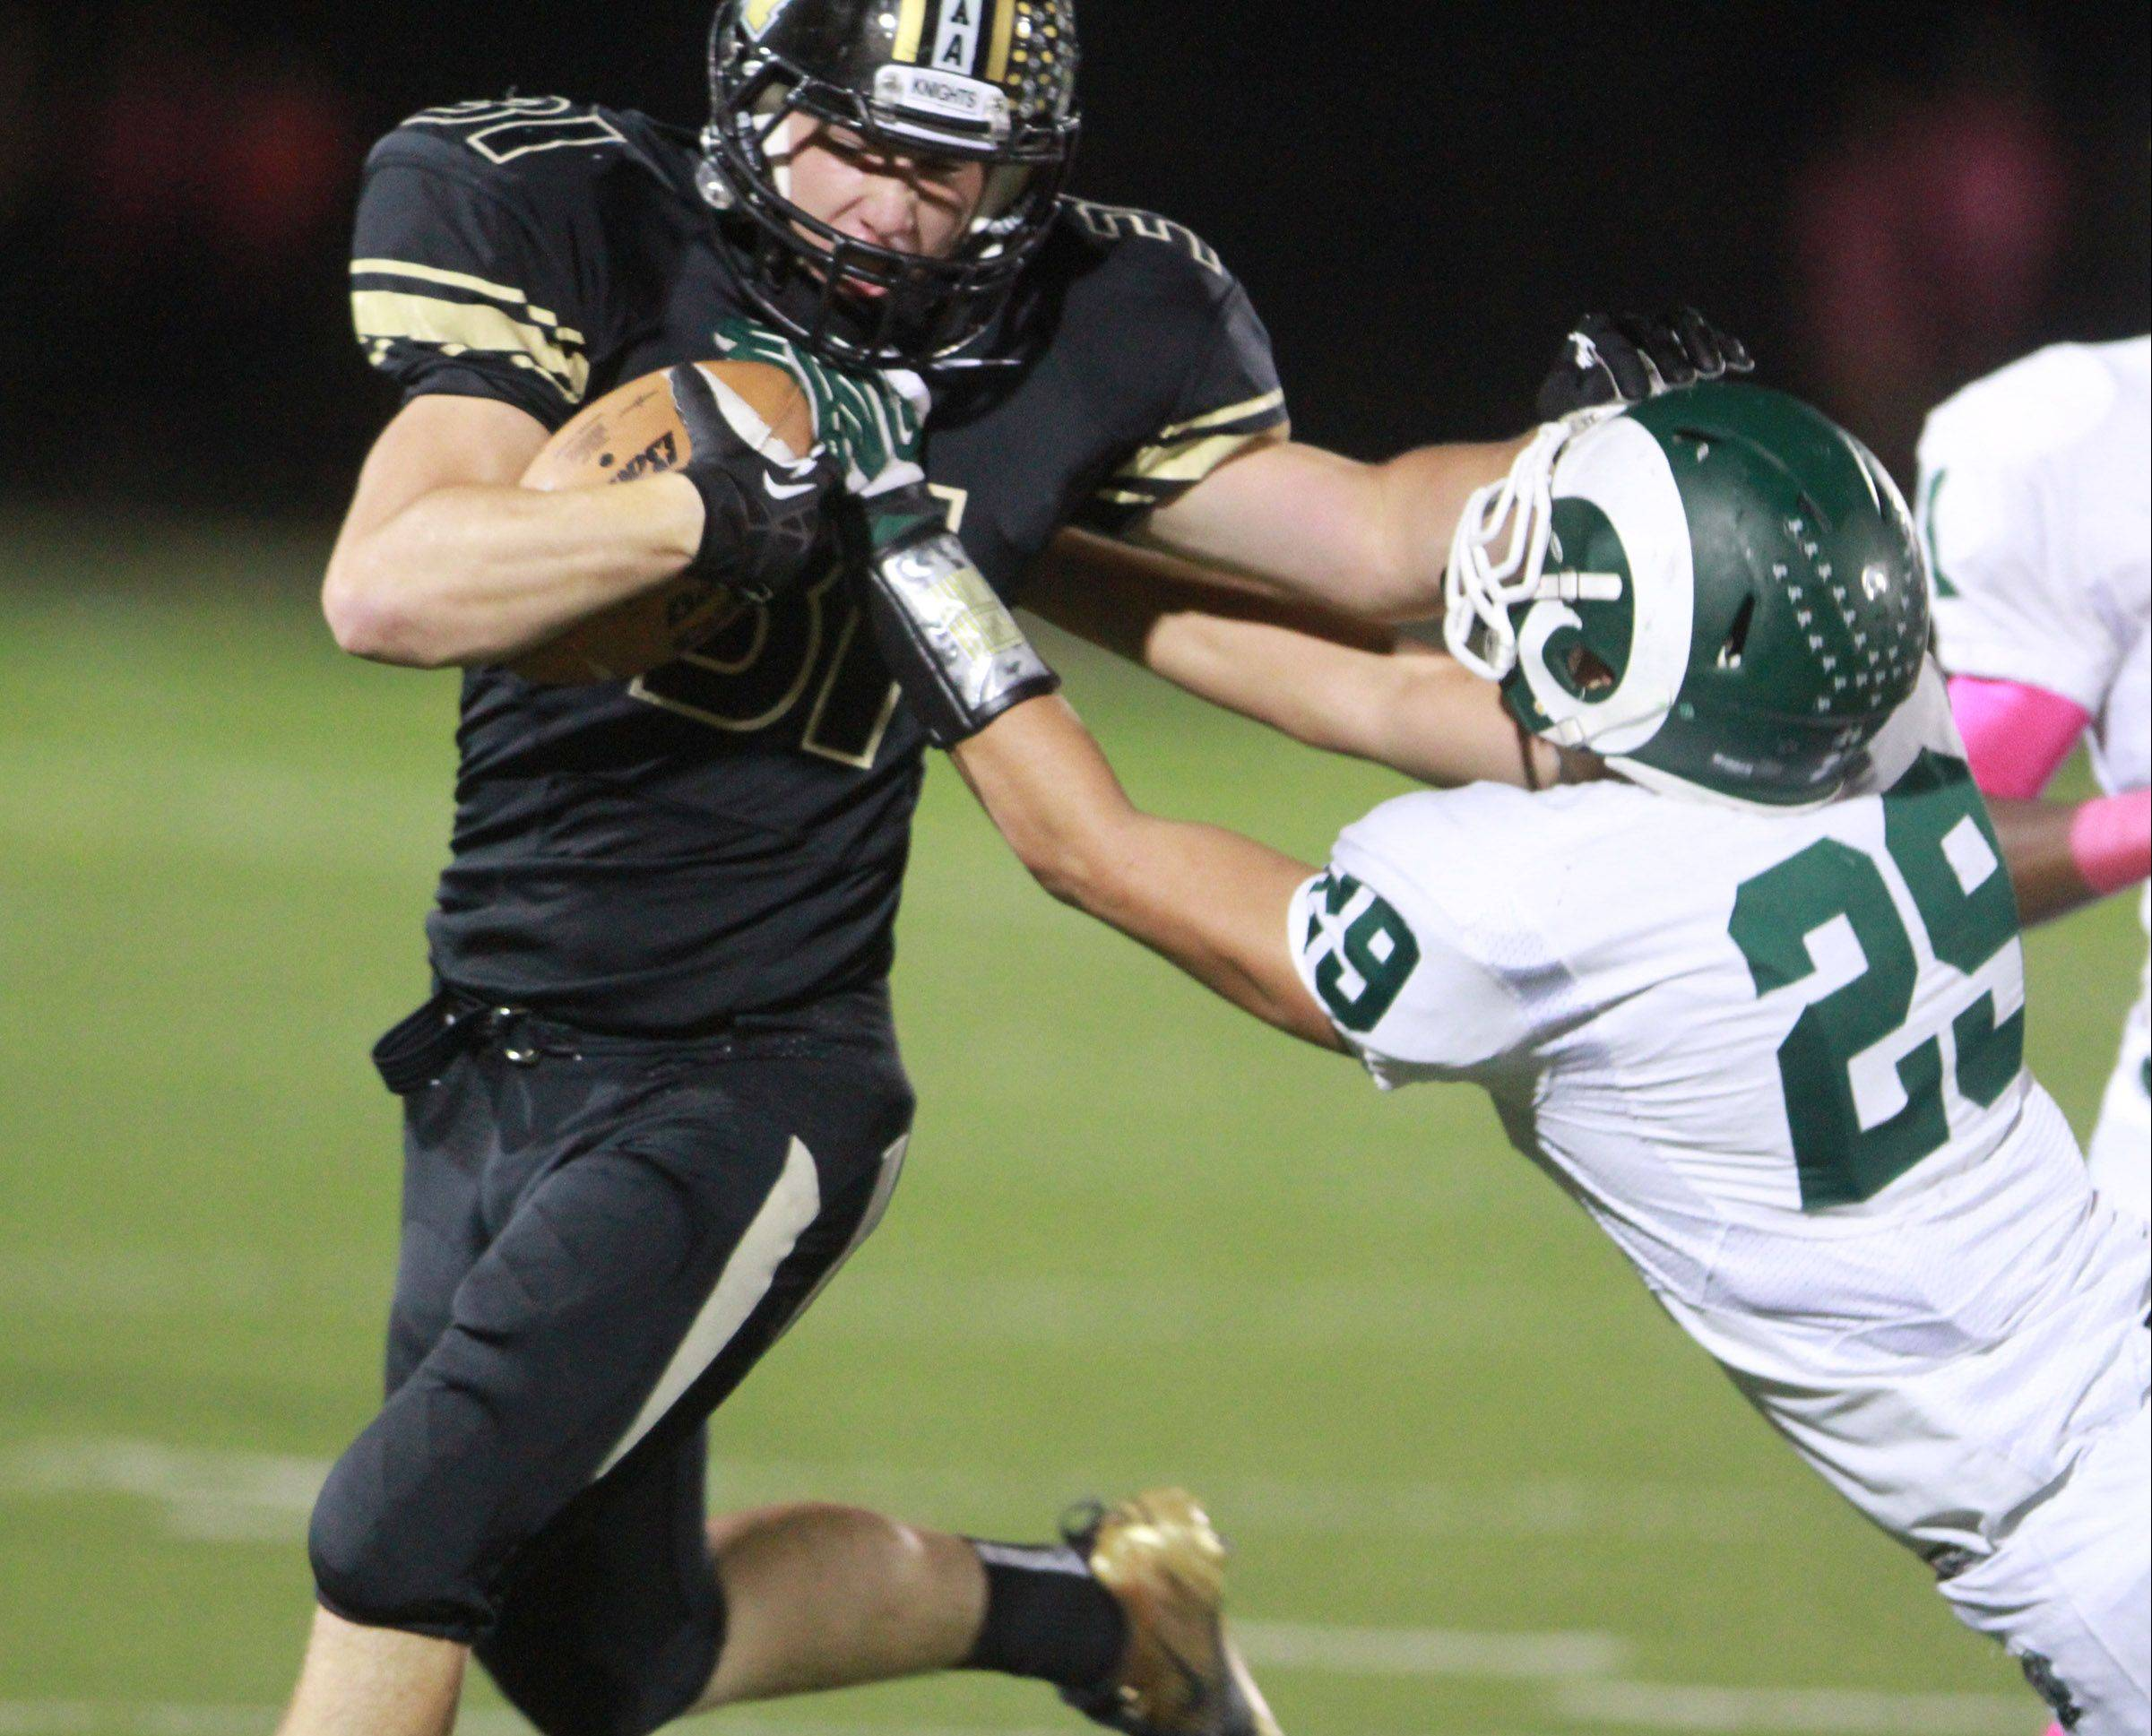 Grayslake North running back Brad Baker is pulled down by Grayslake Central linebacker Jaron Armiger at Grayslake North on Friday.